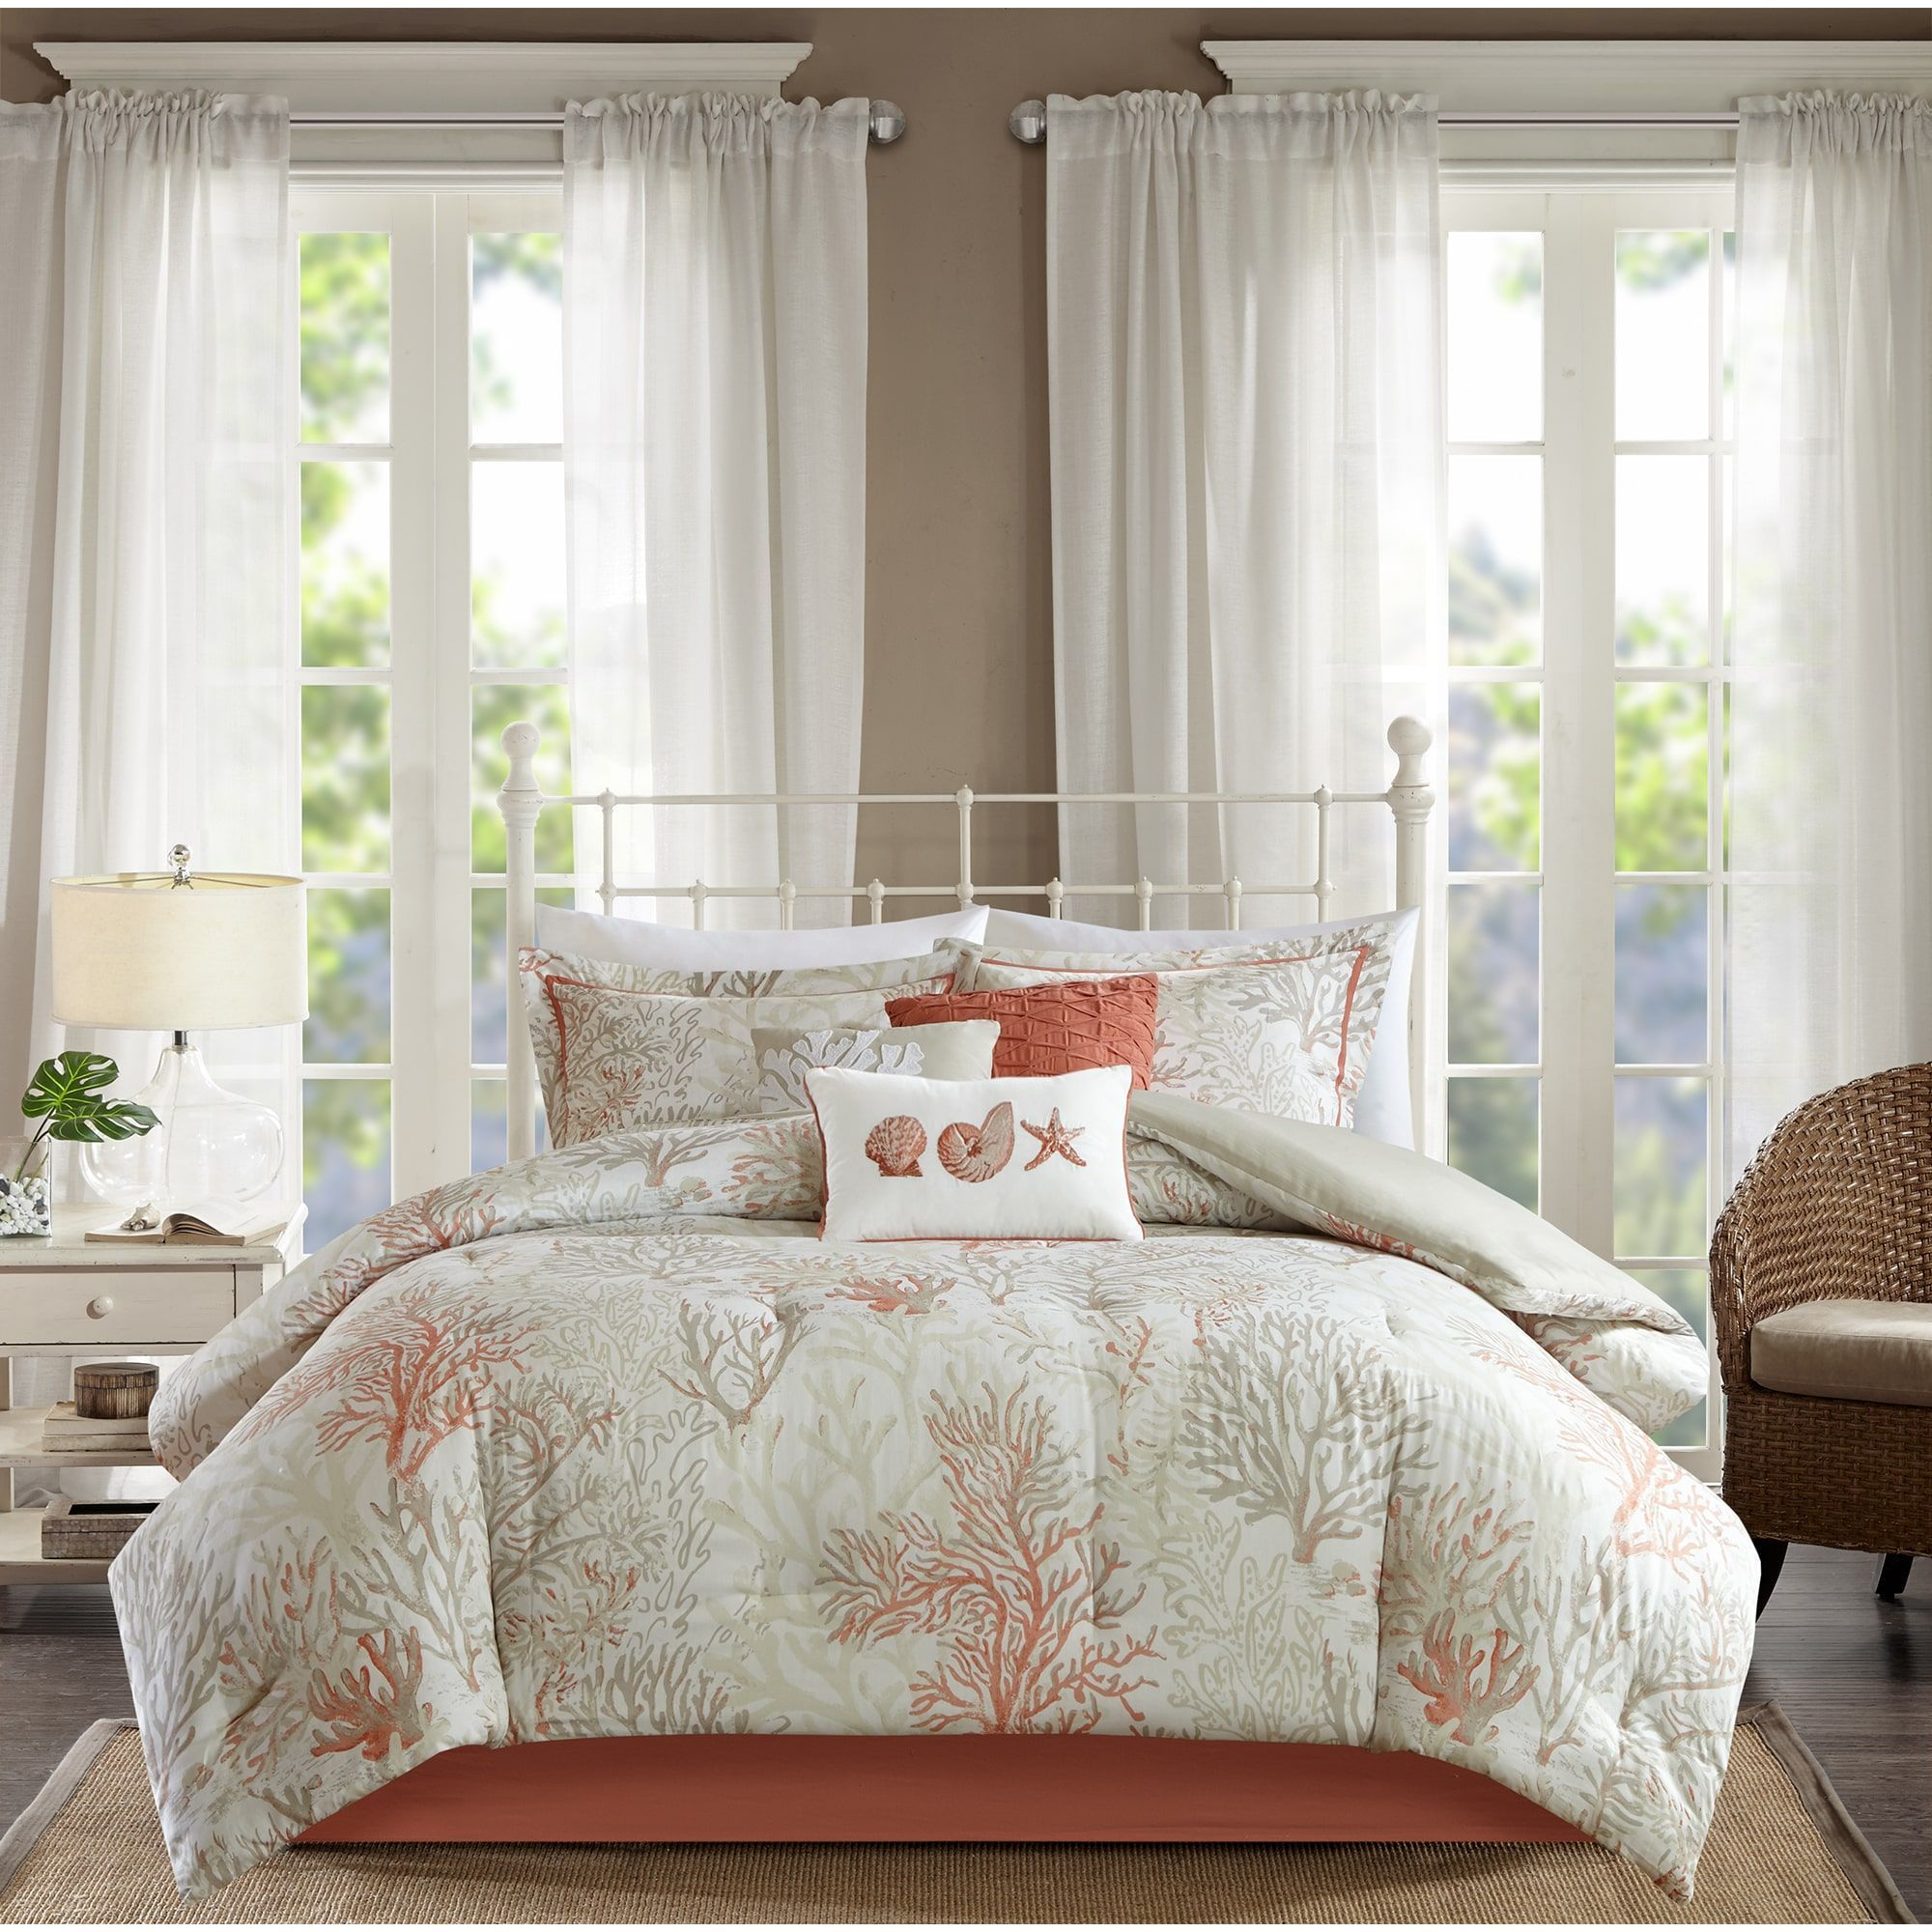 sateen printed floral charisma product comforter shipping today bath blue bedding set free overstock alfresco